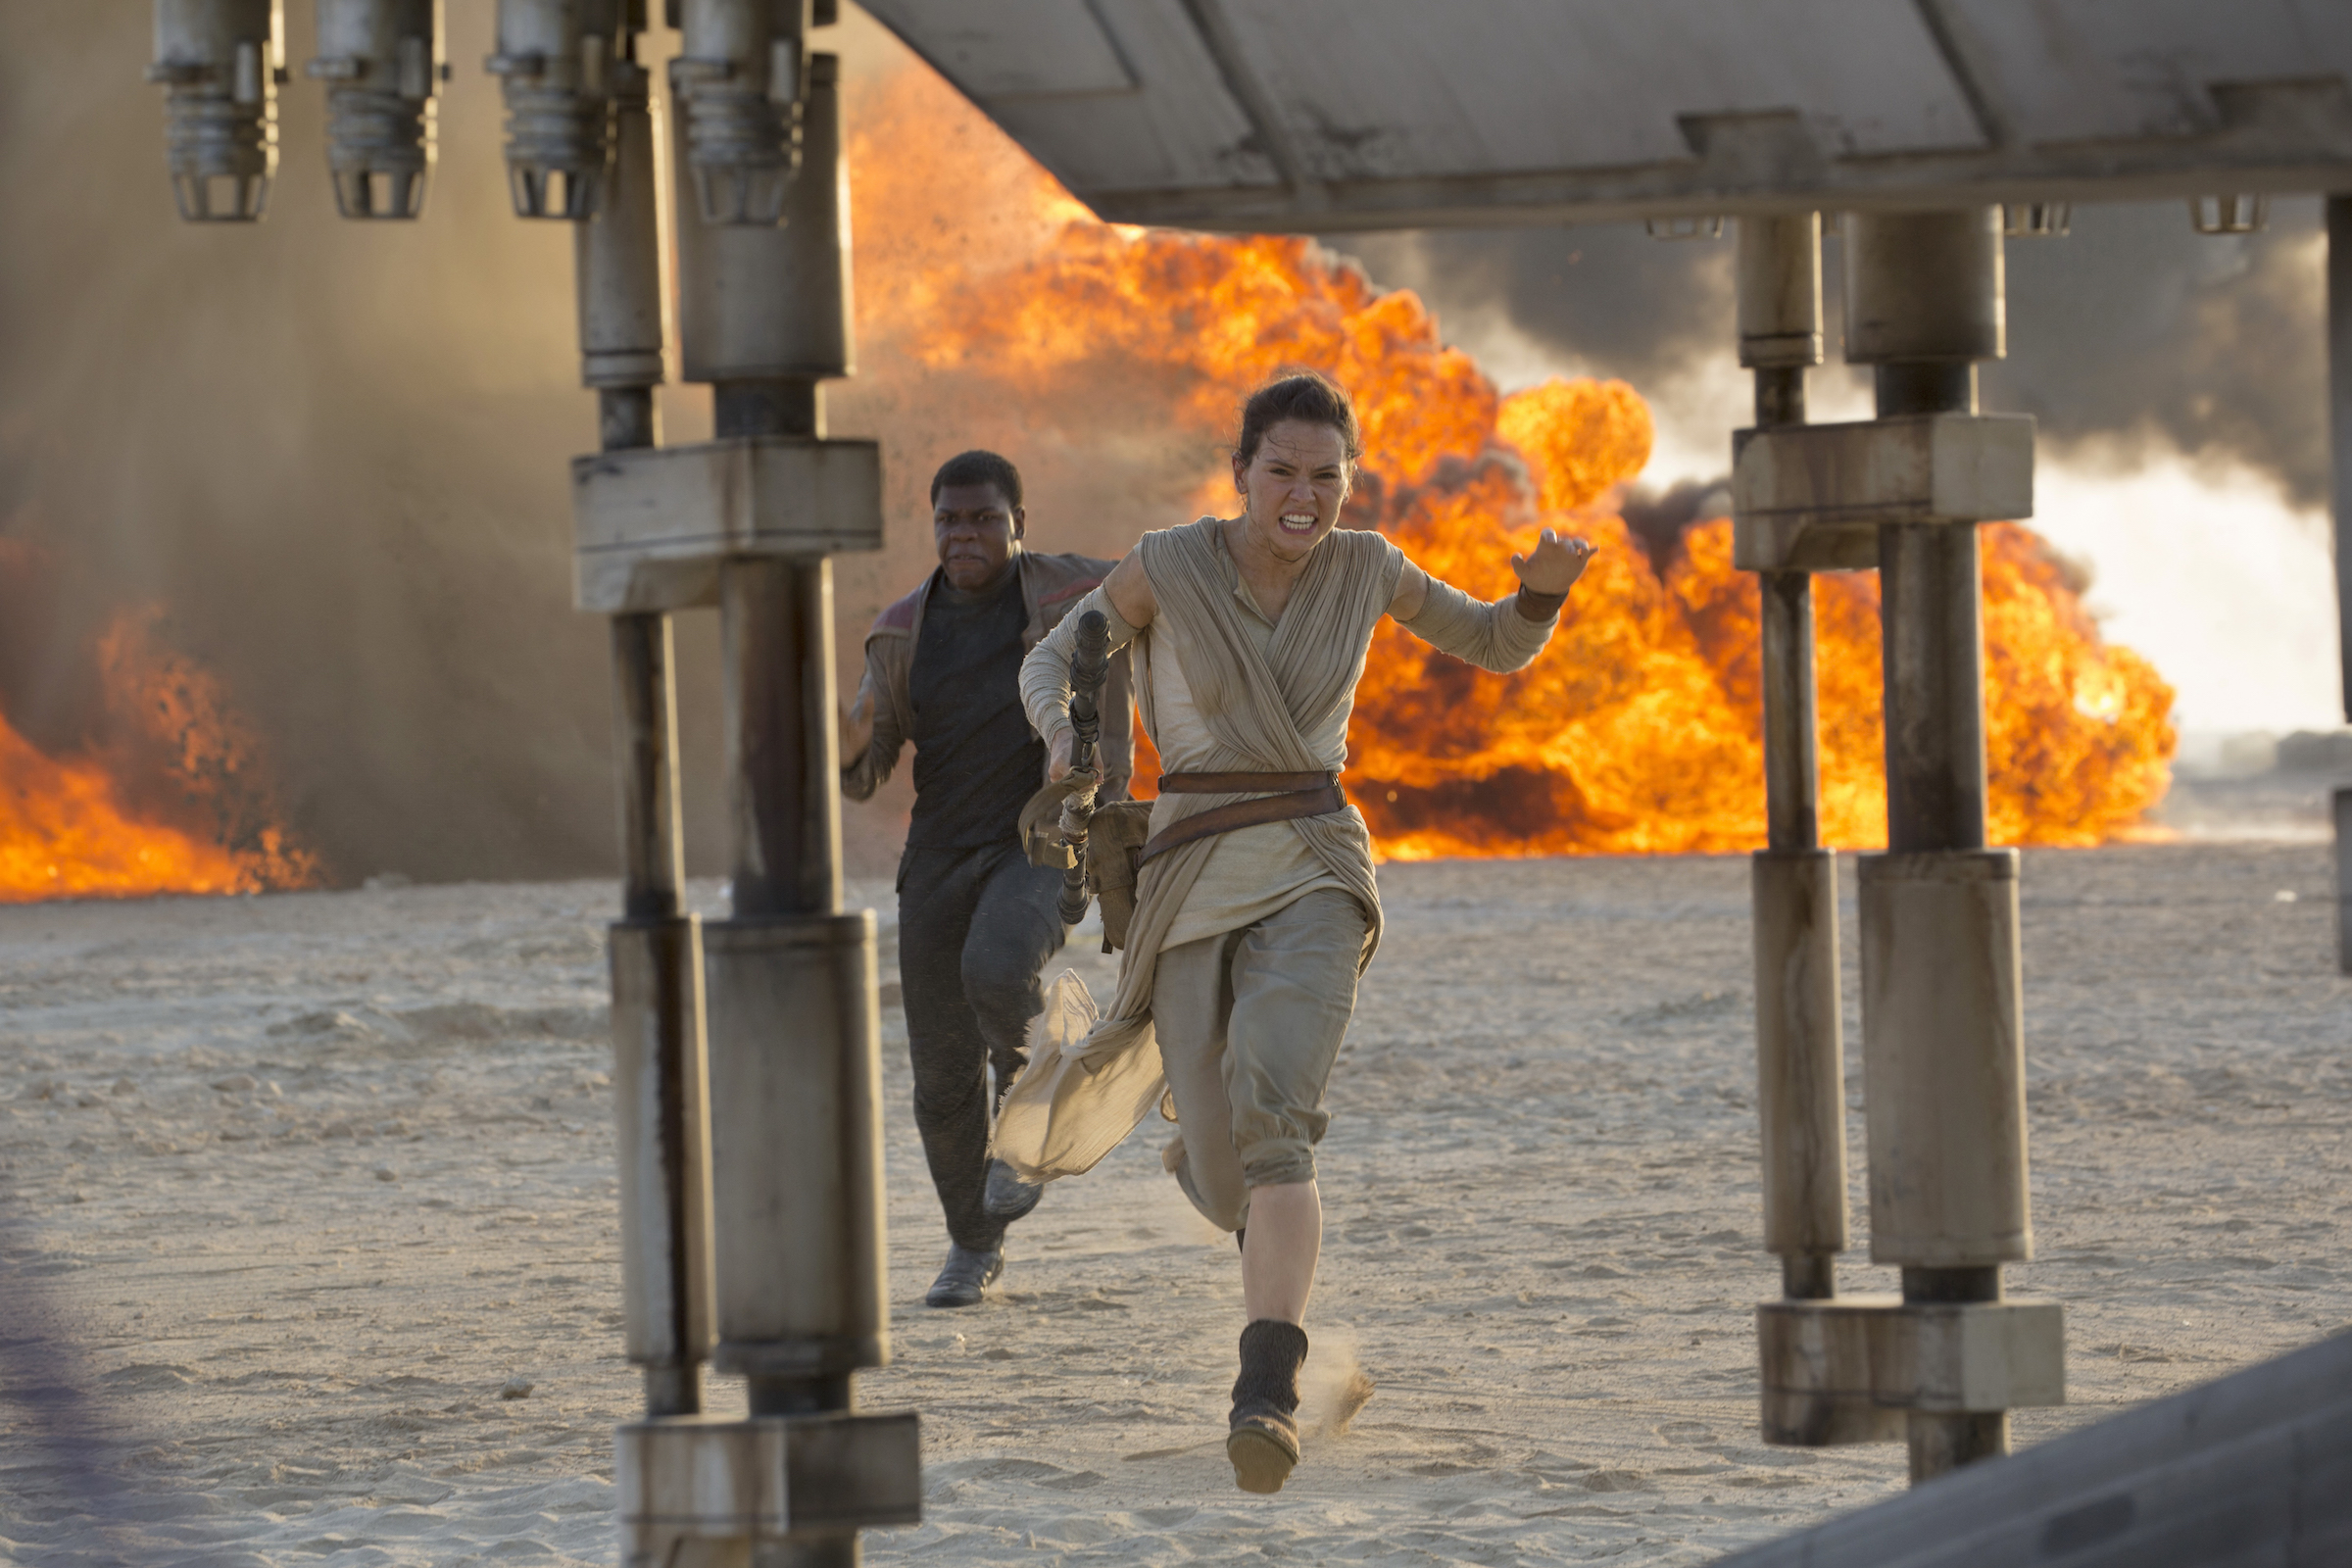 The Force Awakens - Rey and Finn on Jakku